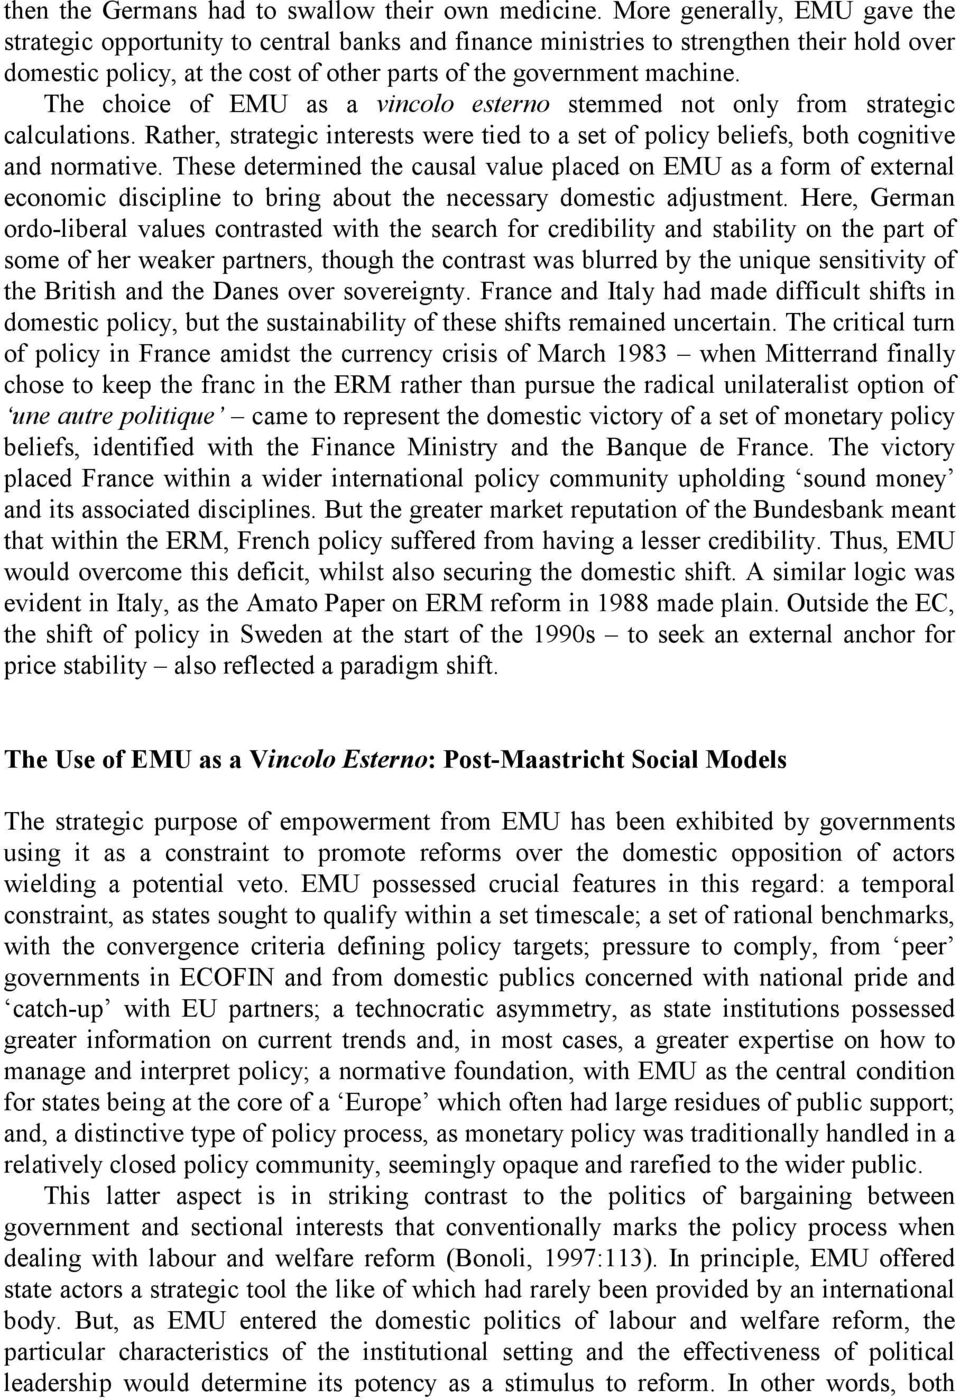 The choice of EMU as a vincolo esterno stemmed not only from strategic calculations. Rather, strategic interests were tied to a set of policy beliefs, both cognitive and normative.